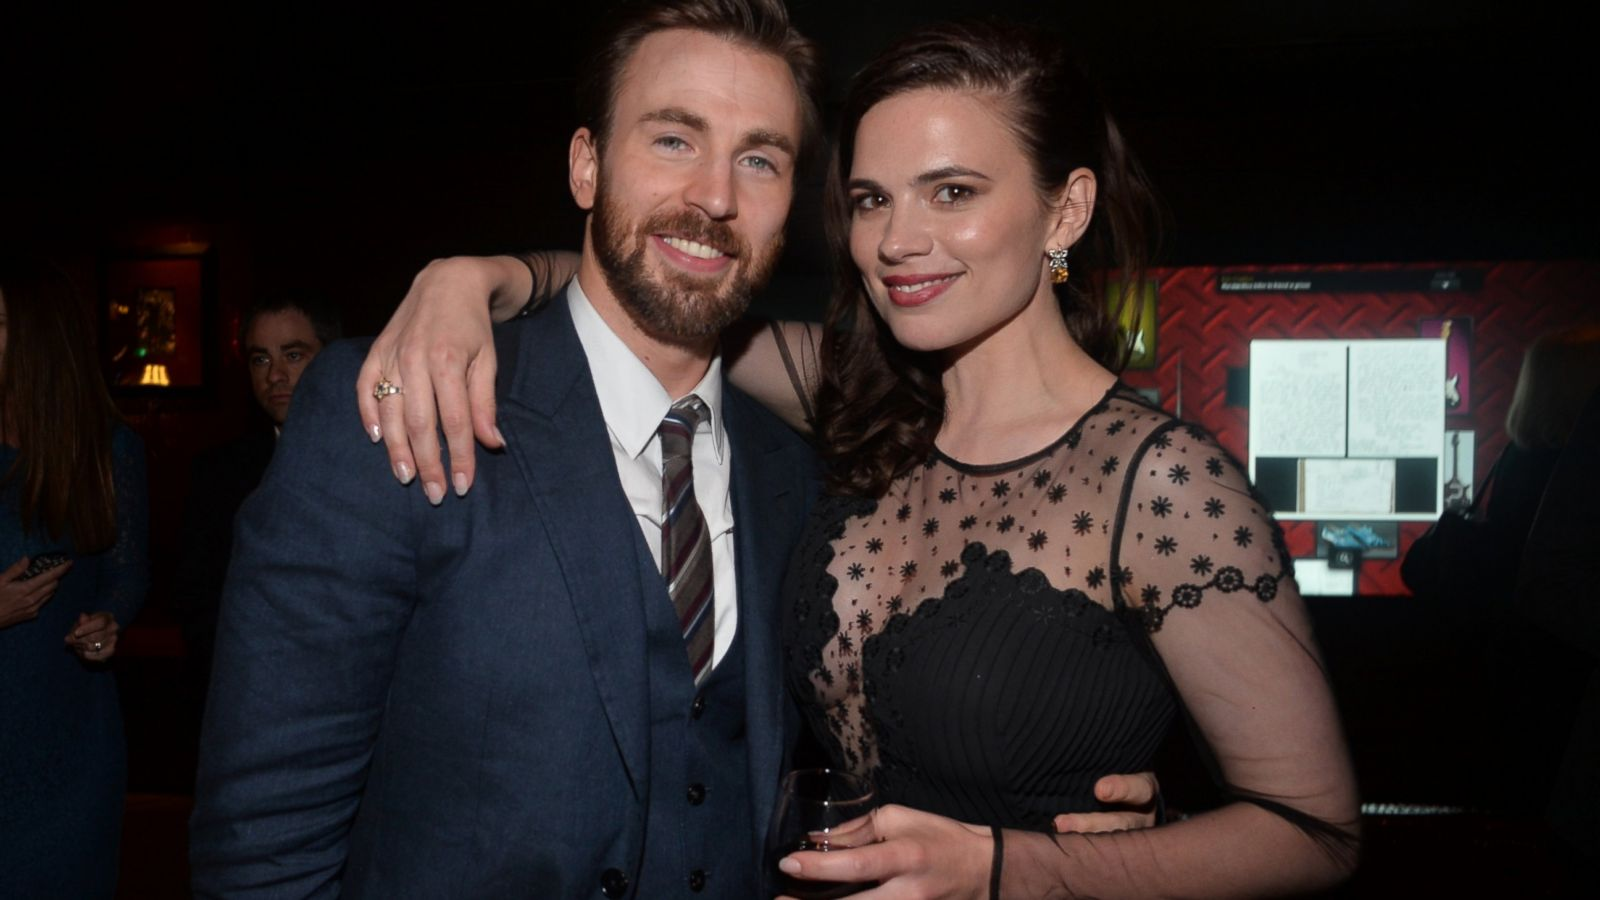 Chris Evans And Hayley Atwell Become Part Of Surprise Proposal